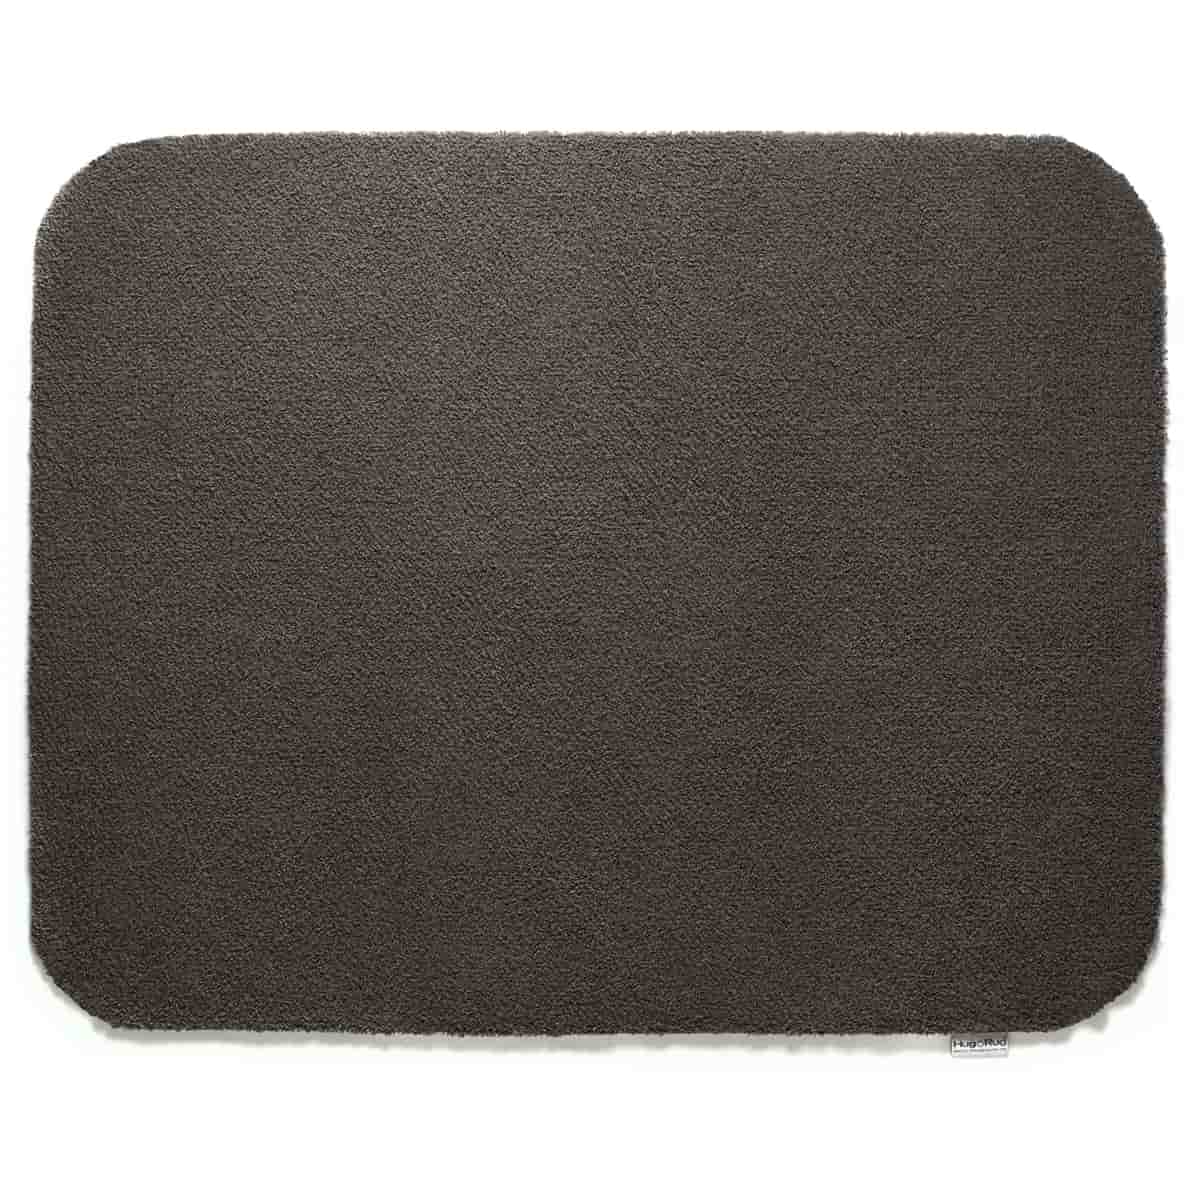 paillasson tapis truffle 100 recycl 150x65cm paillasson nettoie bottes. Black Bedroom Furniture Sets. Home Design Ideas